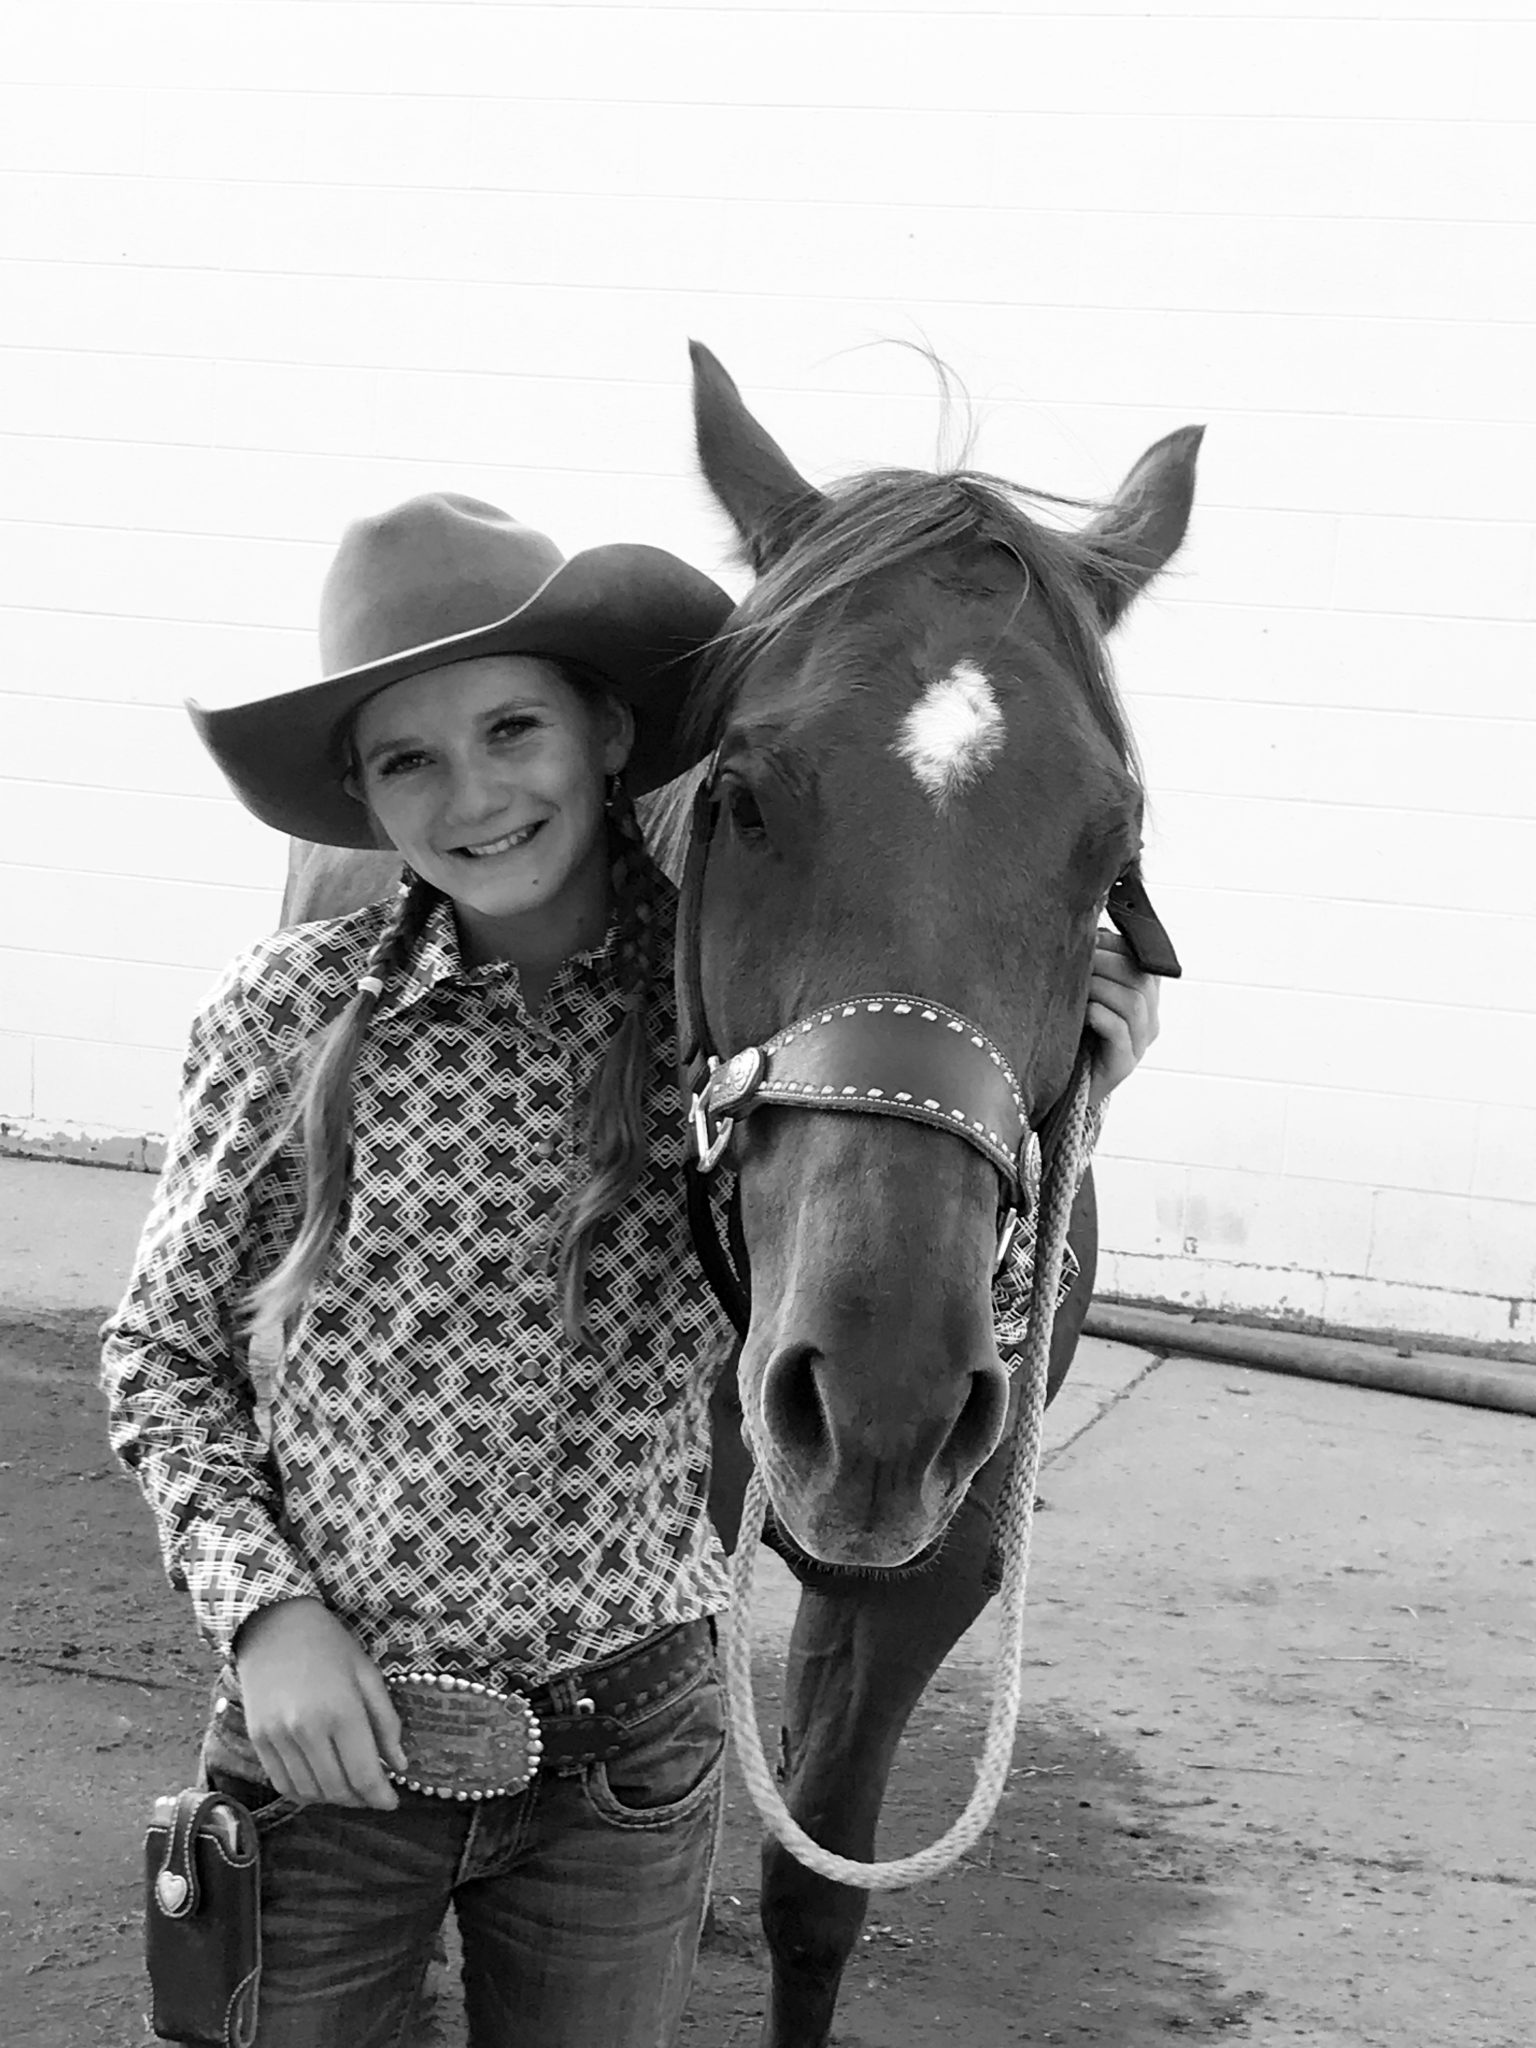 Local Eighth Grader Competes At Nevada State Finals Rodeo